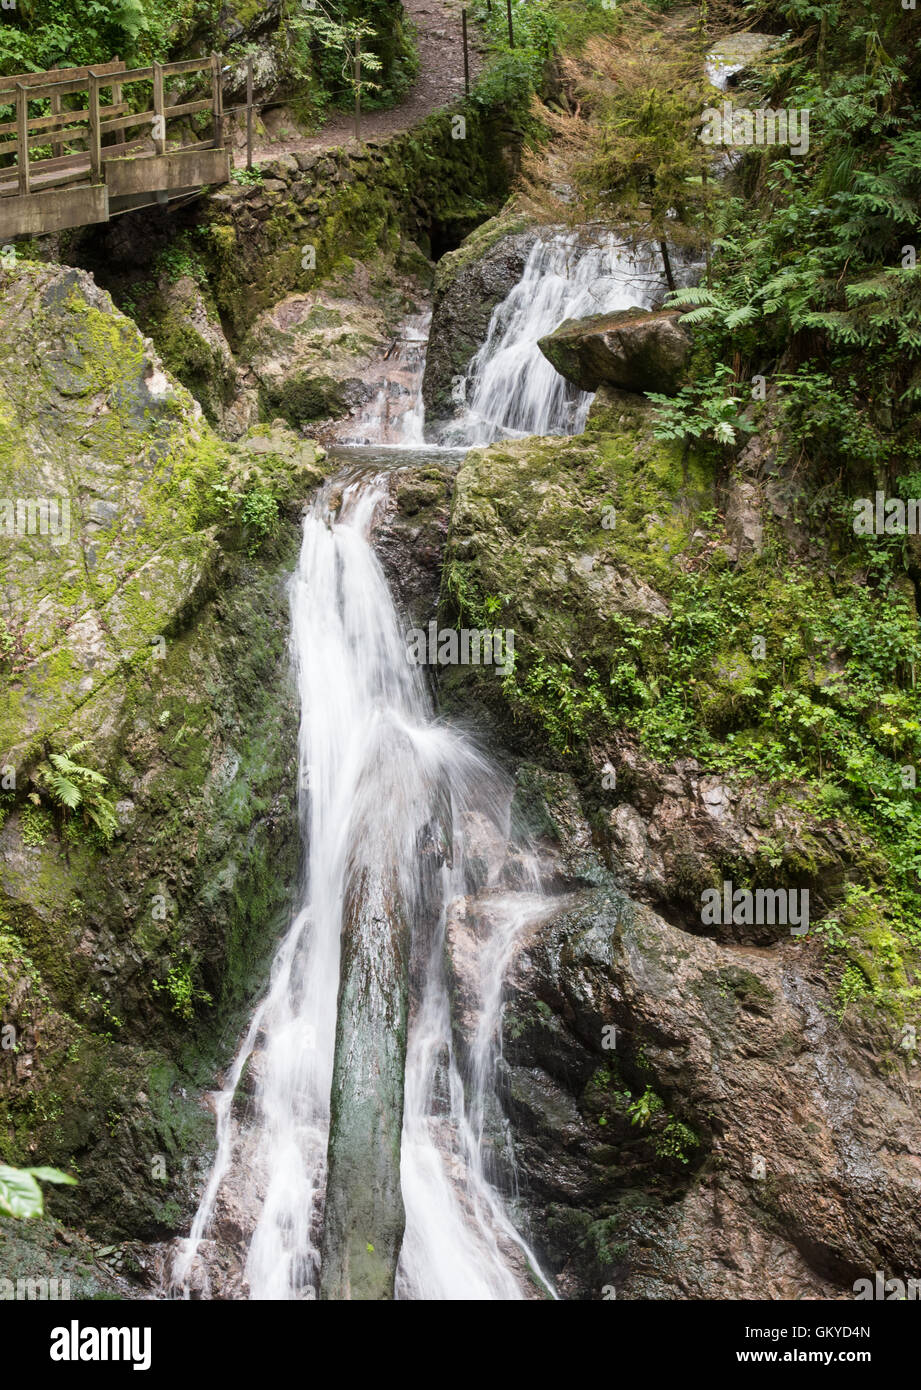 Bonndorf, Germany. 13th July, 2016. The Lotenbachkamm in the Wutachschlucht nature reserve in Bonndorf, Germany, - Stock Image